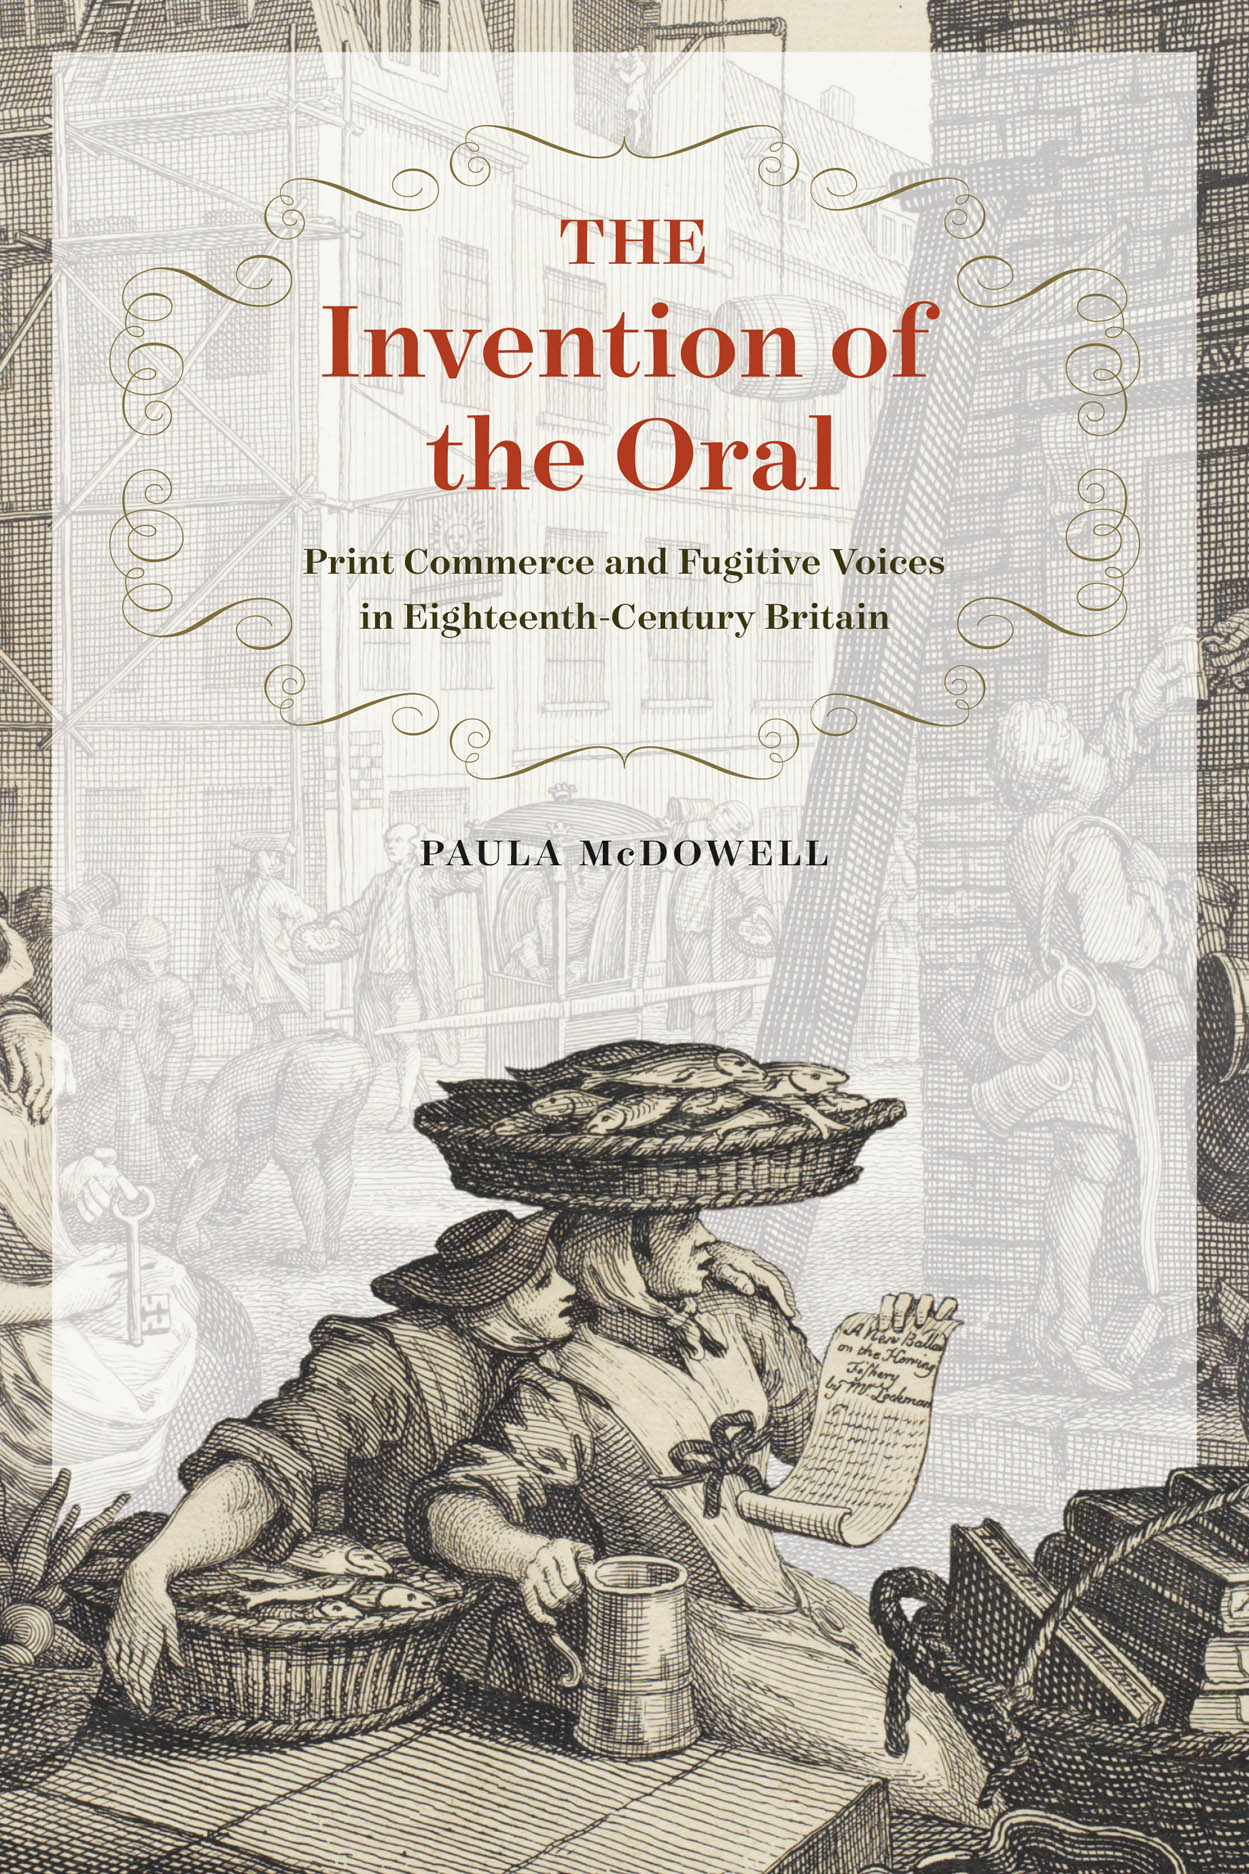 The Invention of the Oral: Print Commerce and Fugitive Voices in Eighteenth-Century Britain